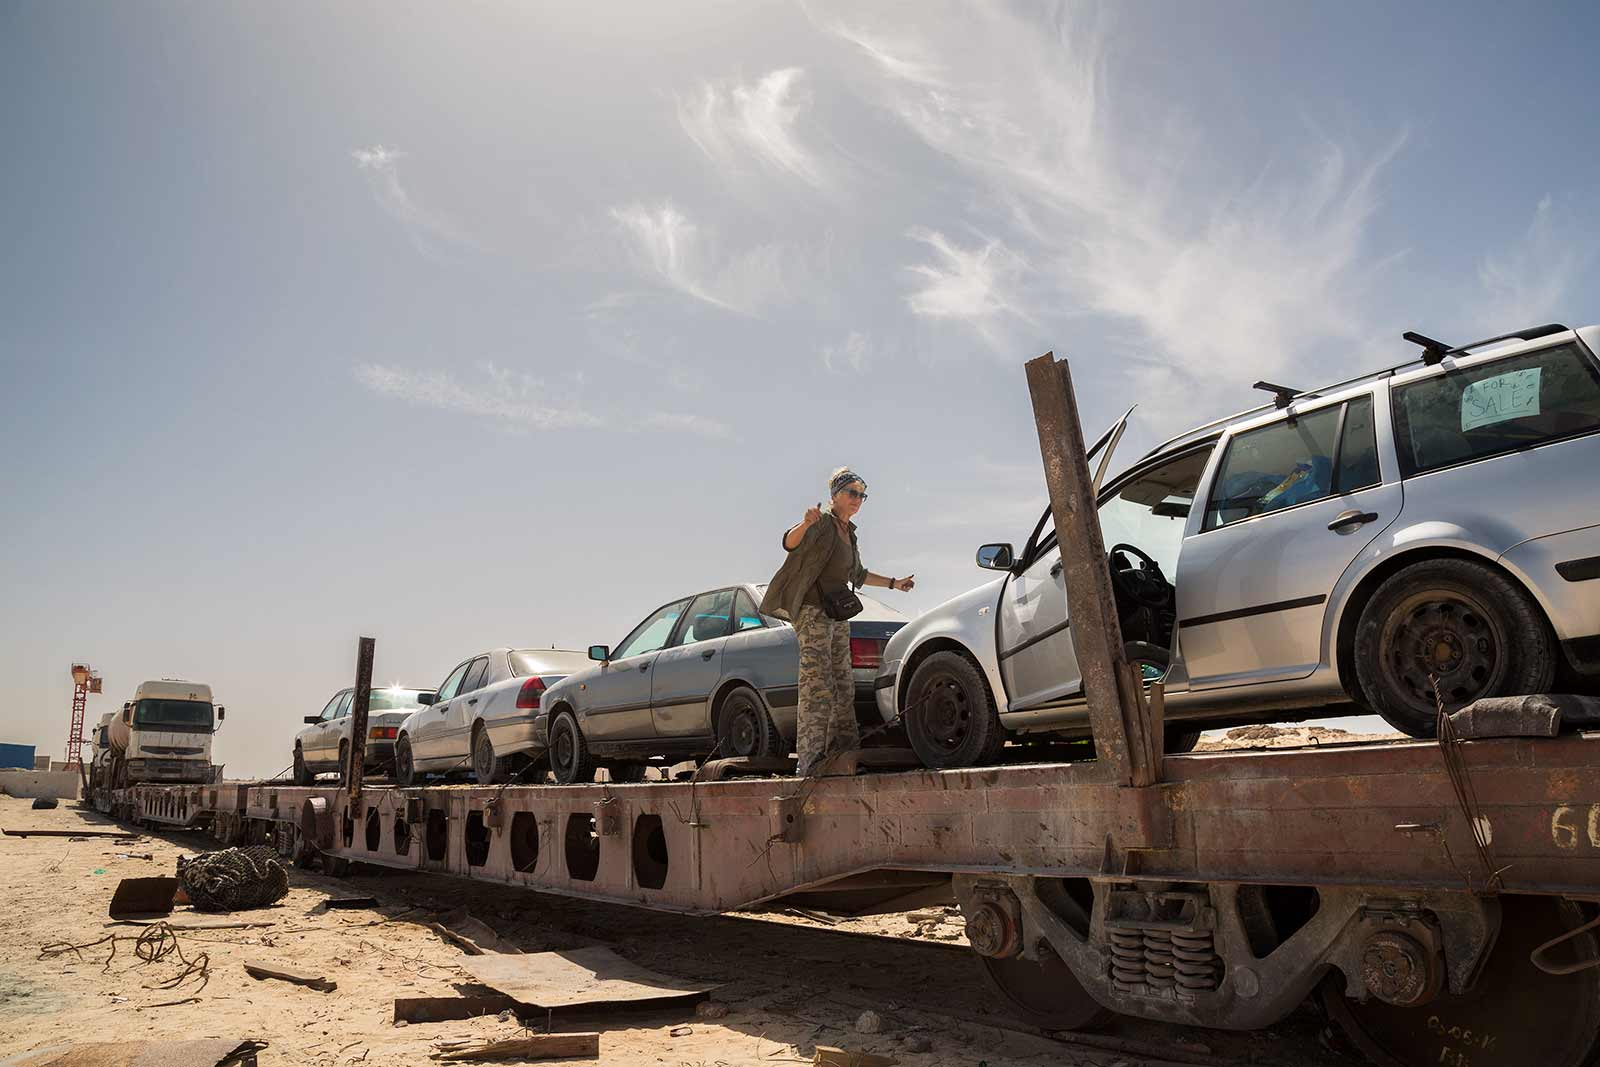 Uploading my car onto the Iron Ore Train in Nouadhibou was already an adventure itself.